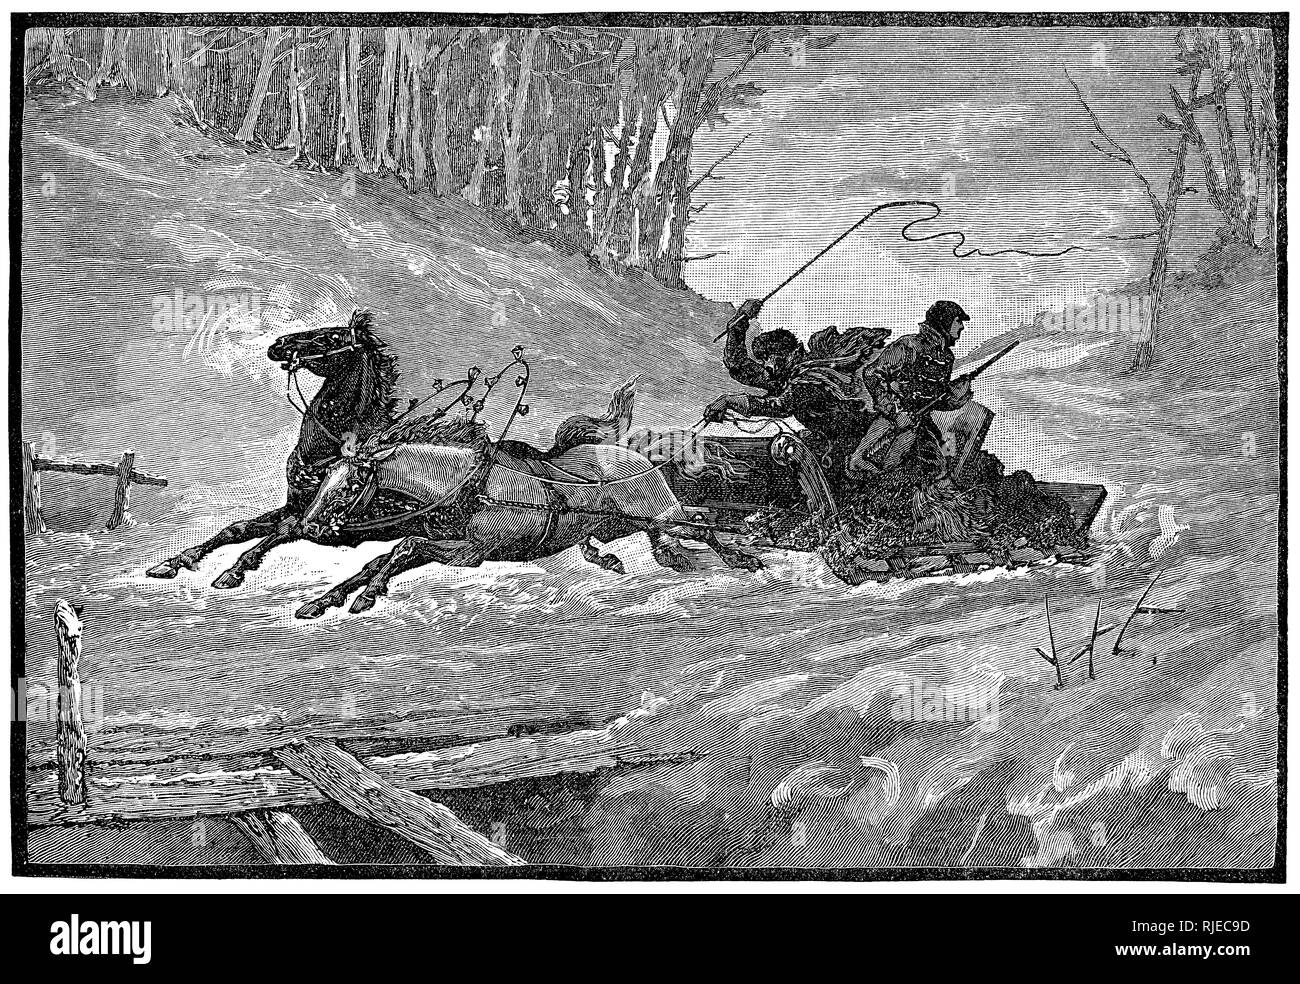 1888 Victorian engraving of horse-drawn sleigh travelling at speed through a snowy landscape. Stock Photo